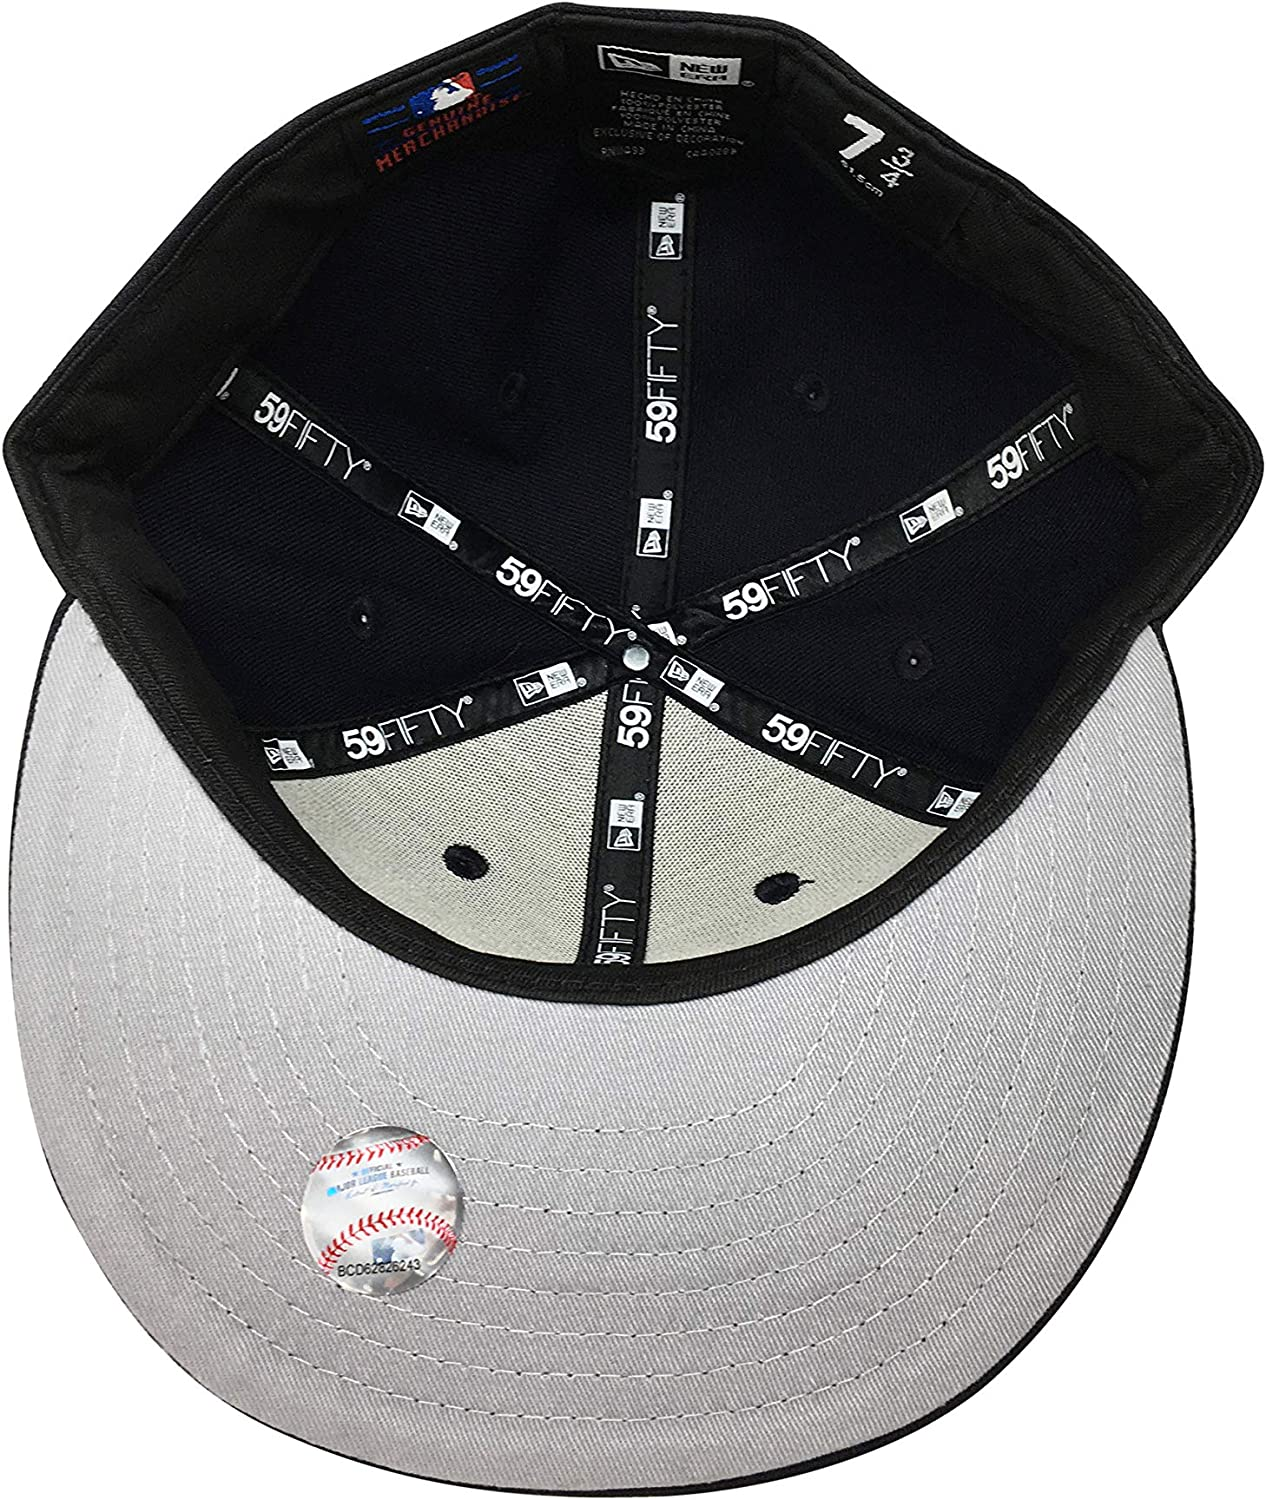 New Era Boston Red Sox 59Fifty Fitted Hat Authentic MLB Fitted Caps 5950 7 3//4, Navy Classic Hit